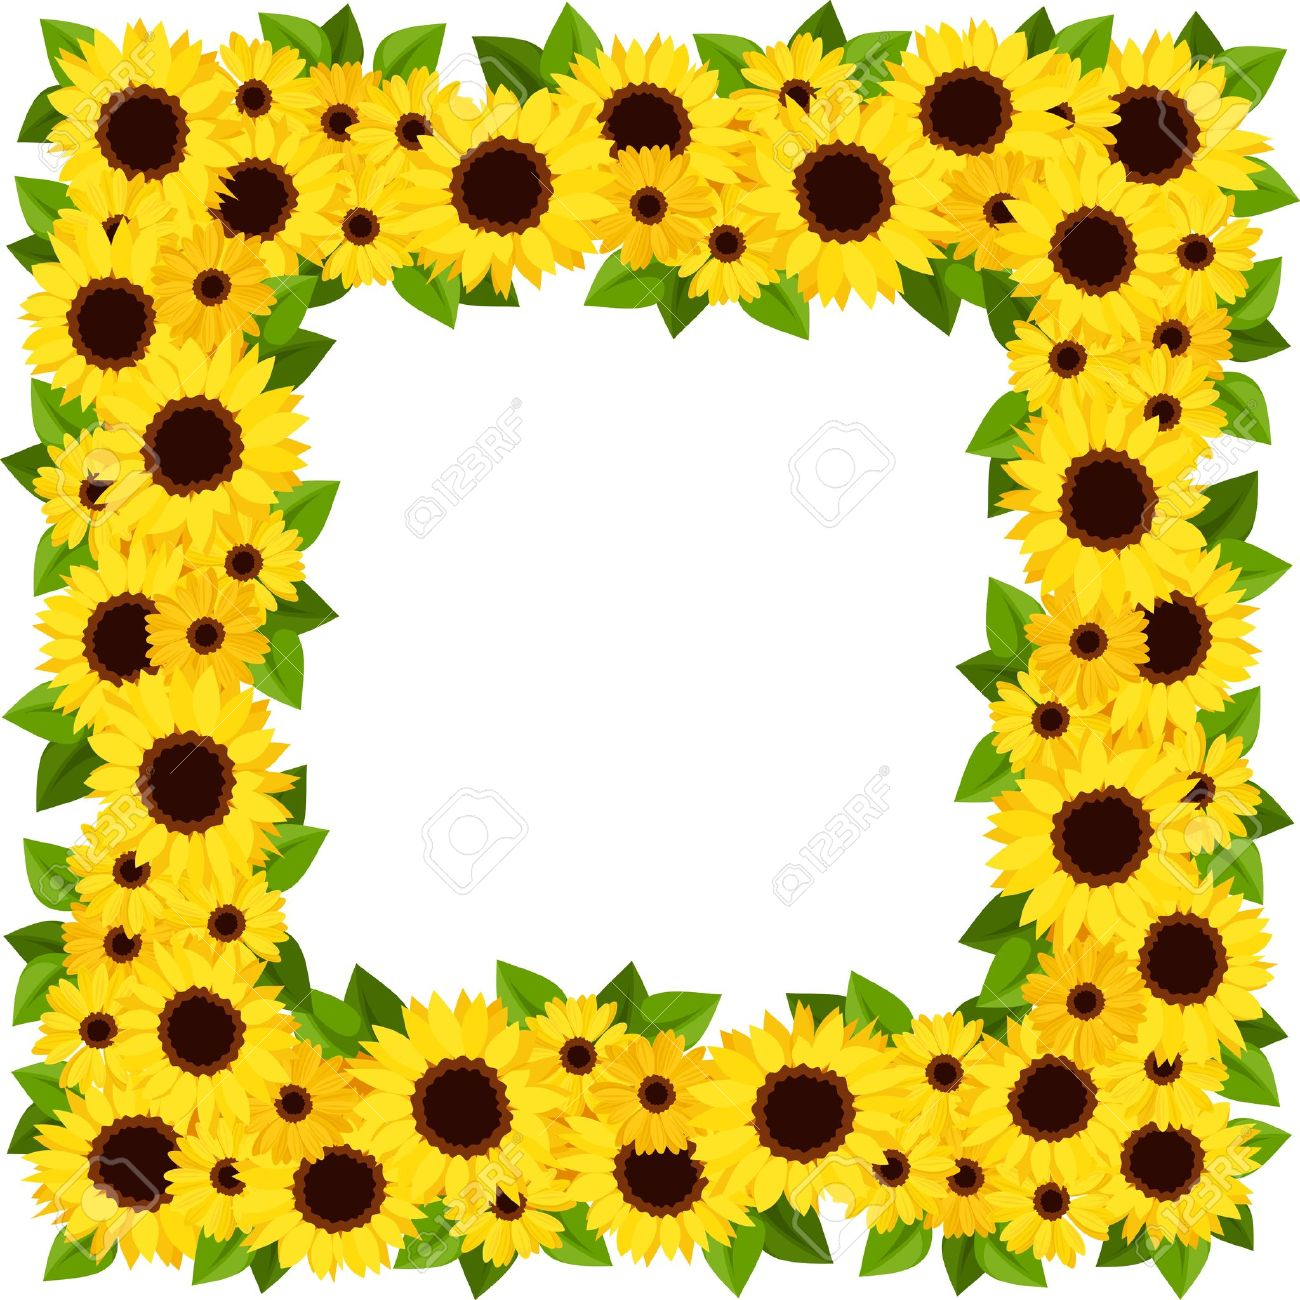 Sunflowers Frame Vector Illustration Royalty Free Cliparts, Vectors ...